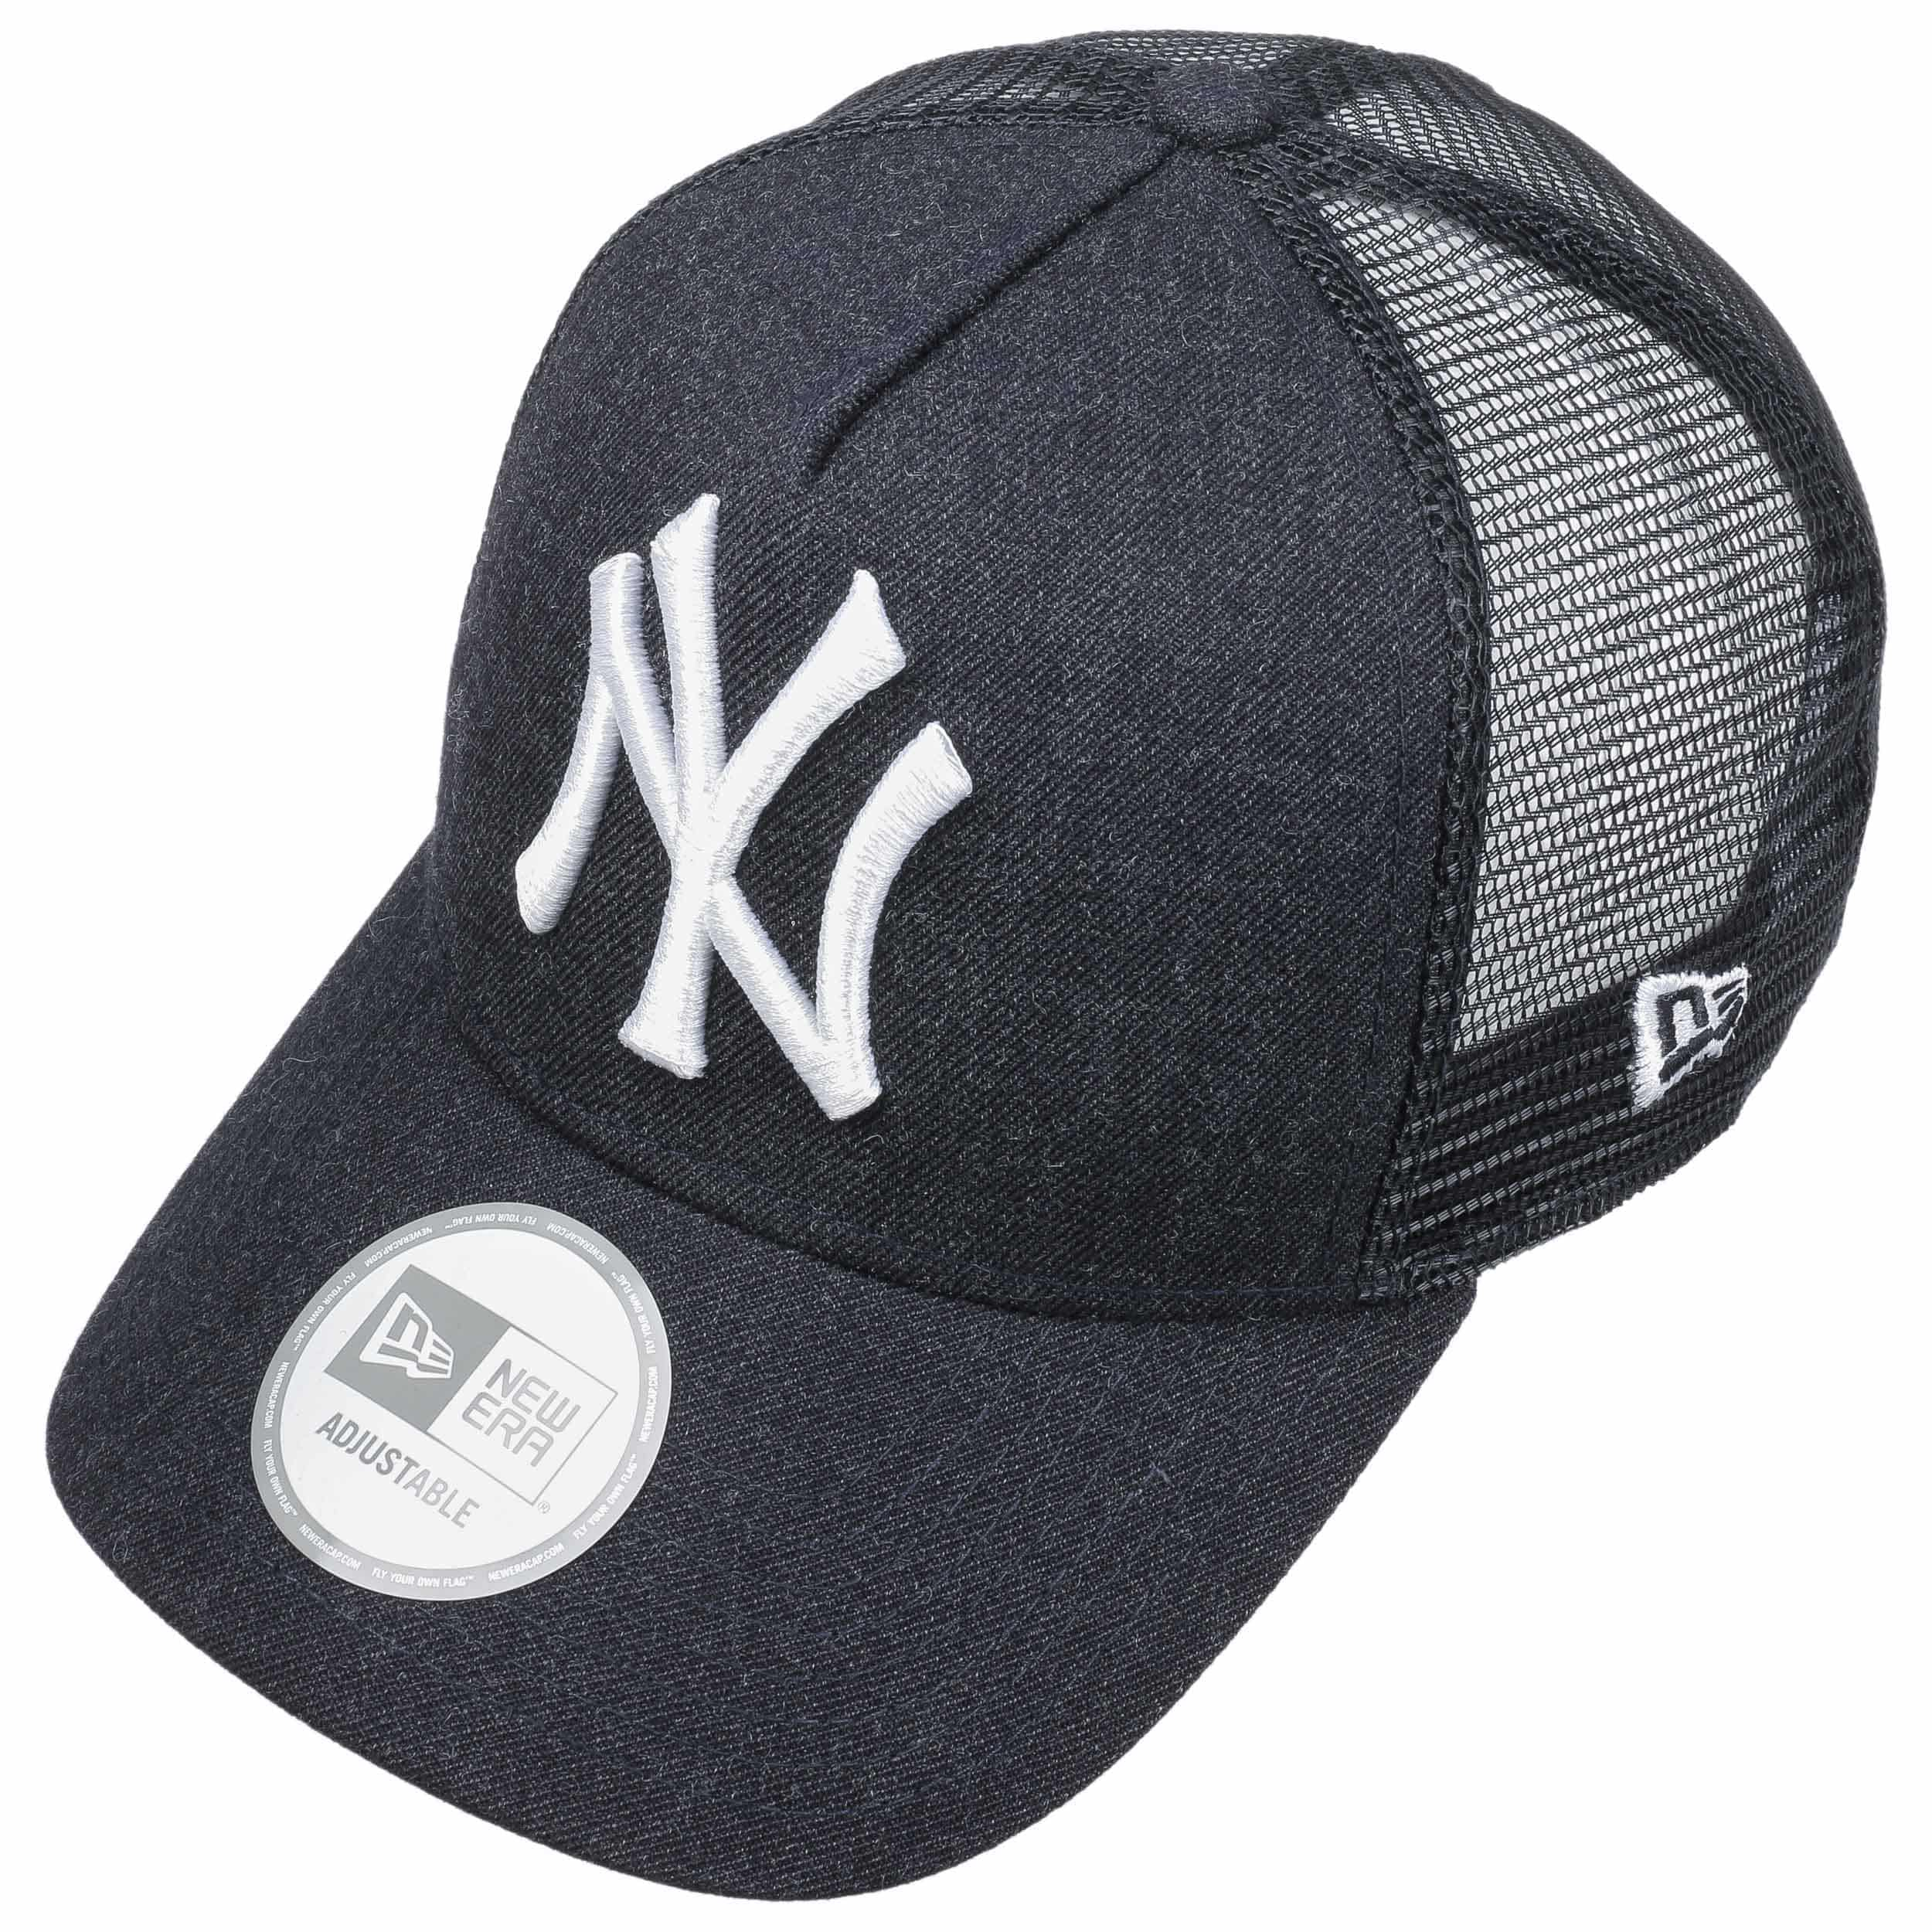 037aa5788d546 Casquette Heather NY Trucker by New Era - bleu foncé 1 ...